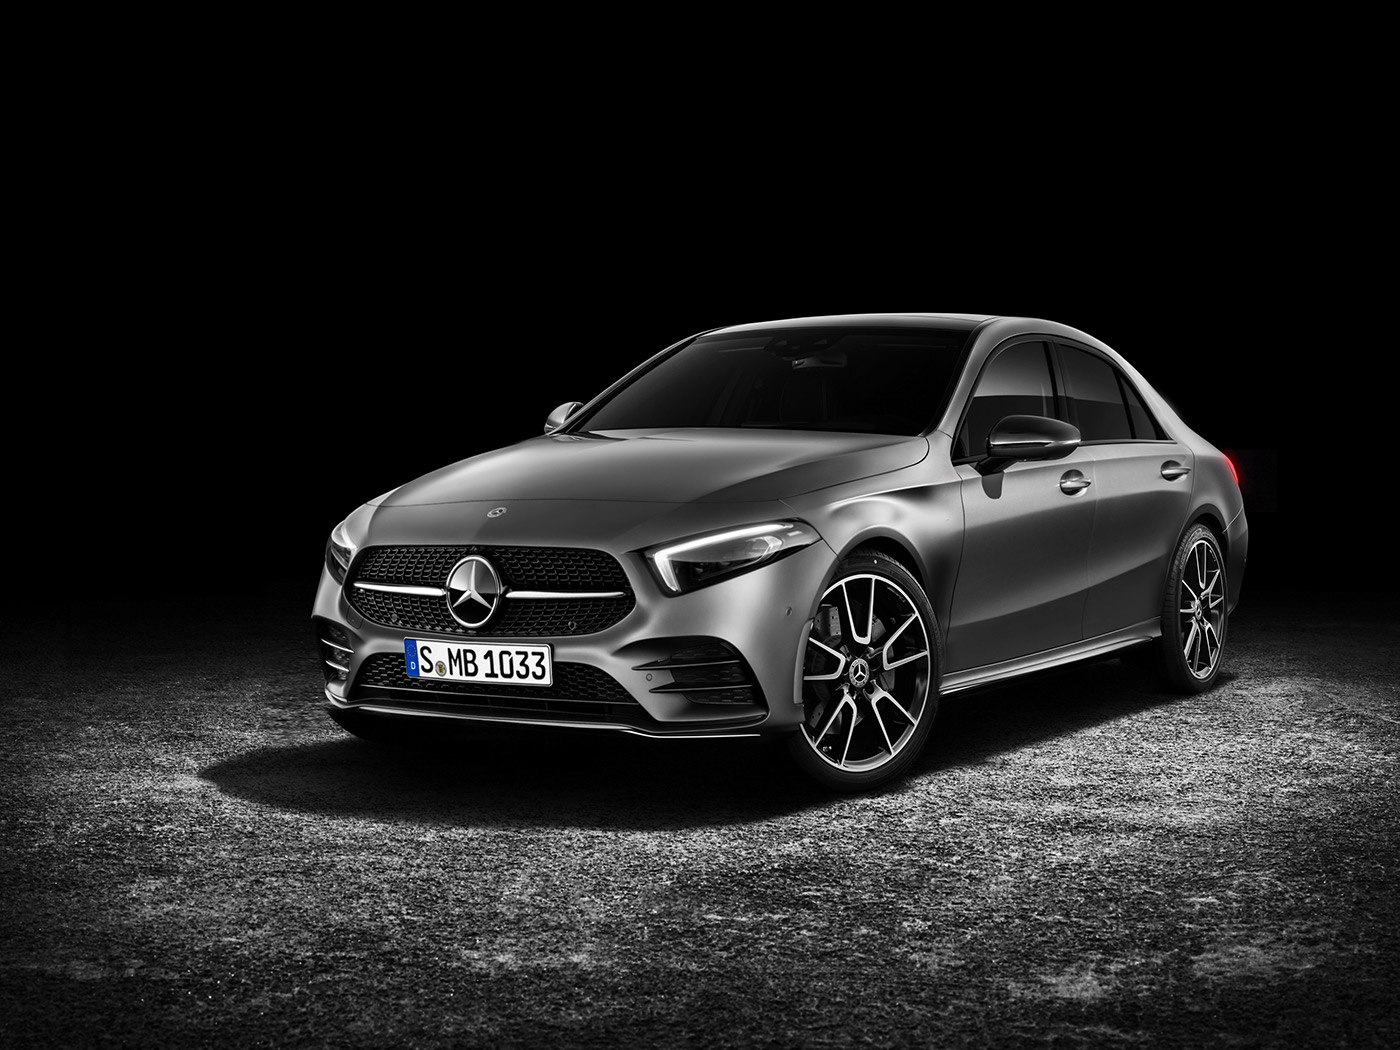 A disappointing fact: the official premiere of Mercedes' smallest A-Class sedan to date isn't happening any earlier than mid-2018